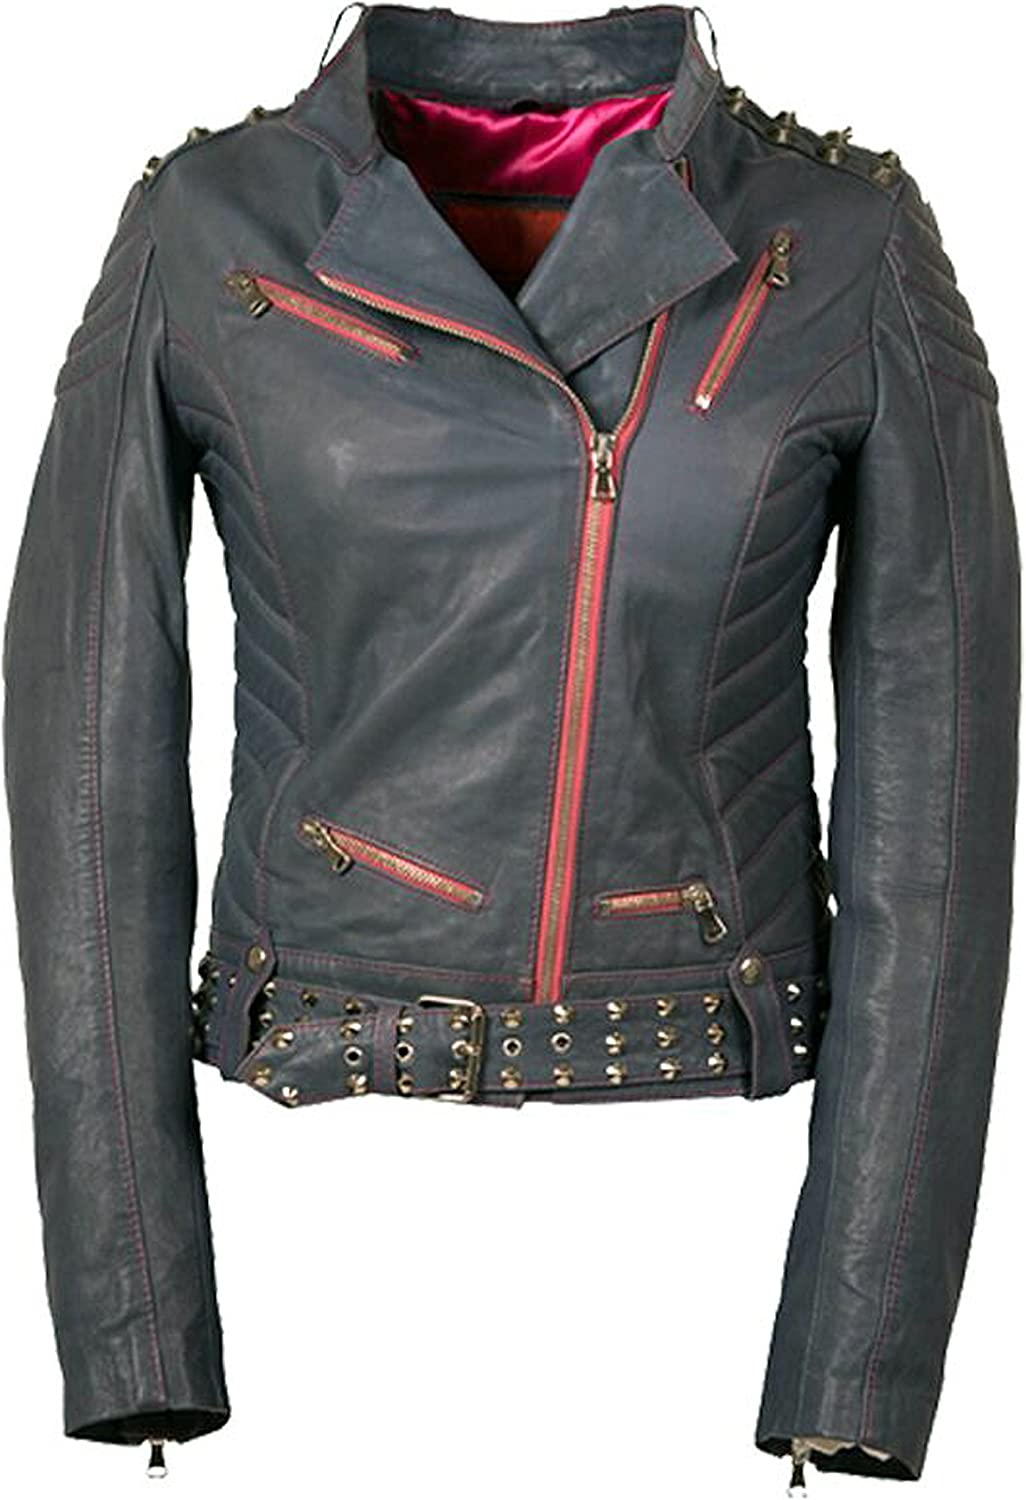 Womens Fashion Super Model Ghost Rider Jacket Original Leather /& Size Small to 4XL